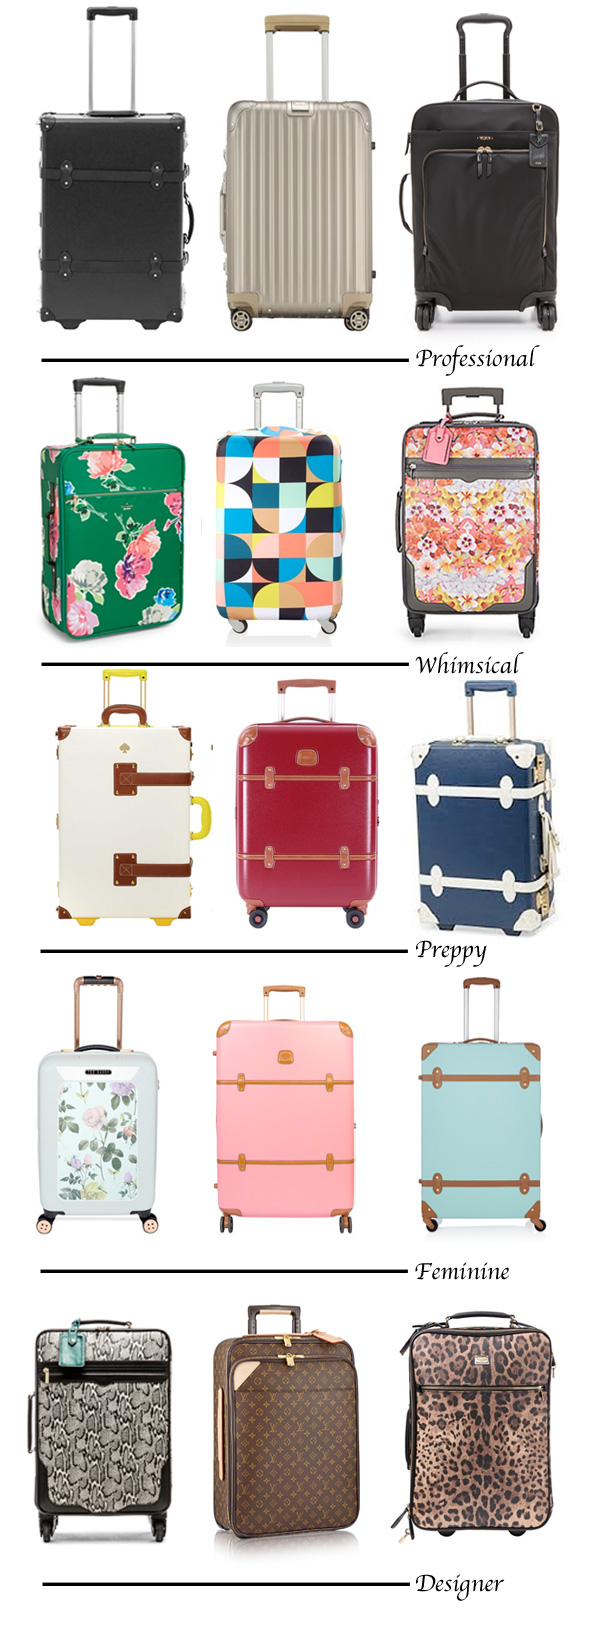 Carry On Luggage for Every Style! | Traveling Chic